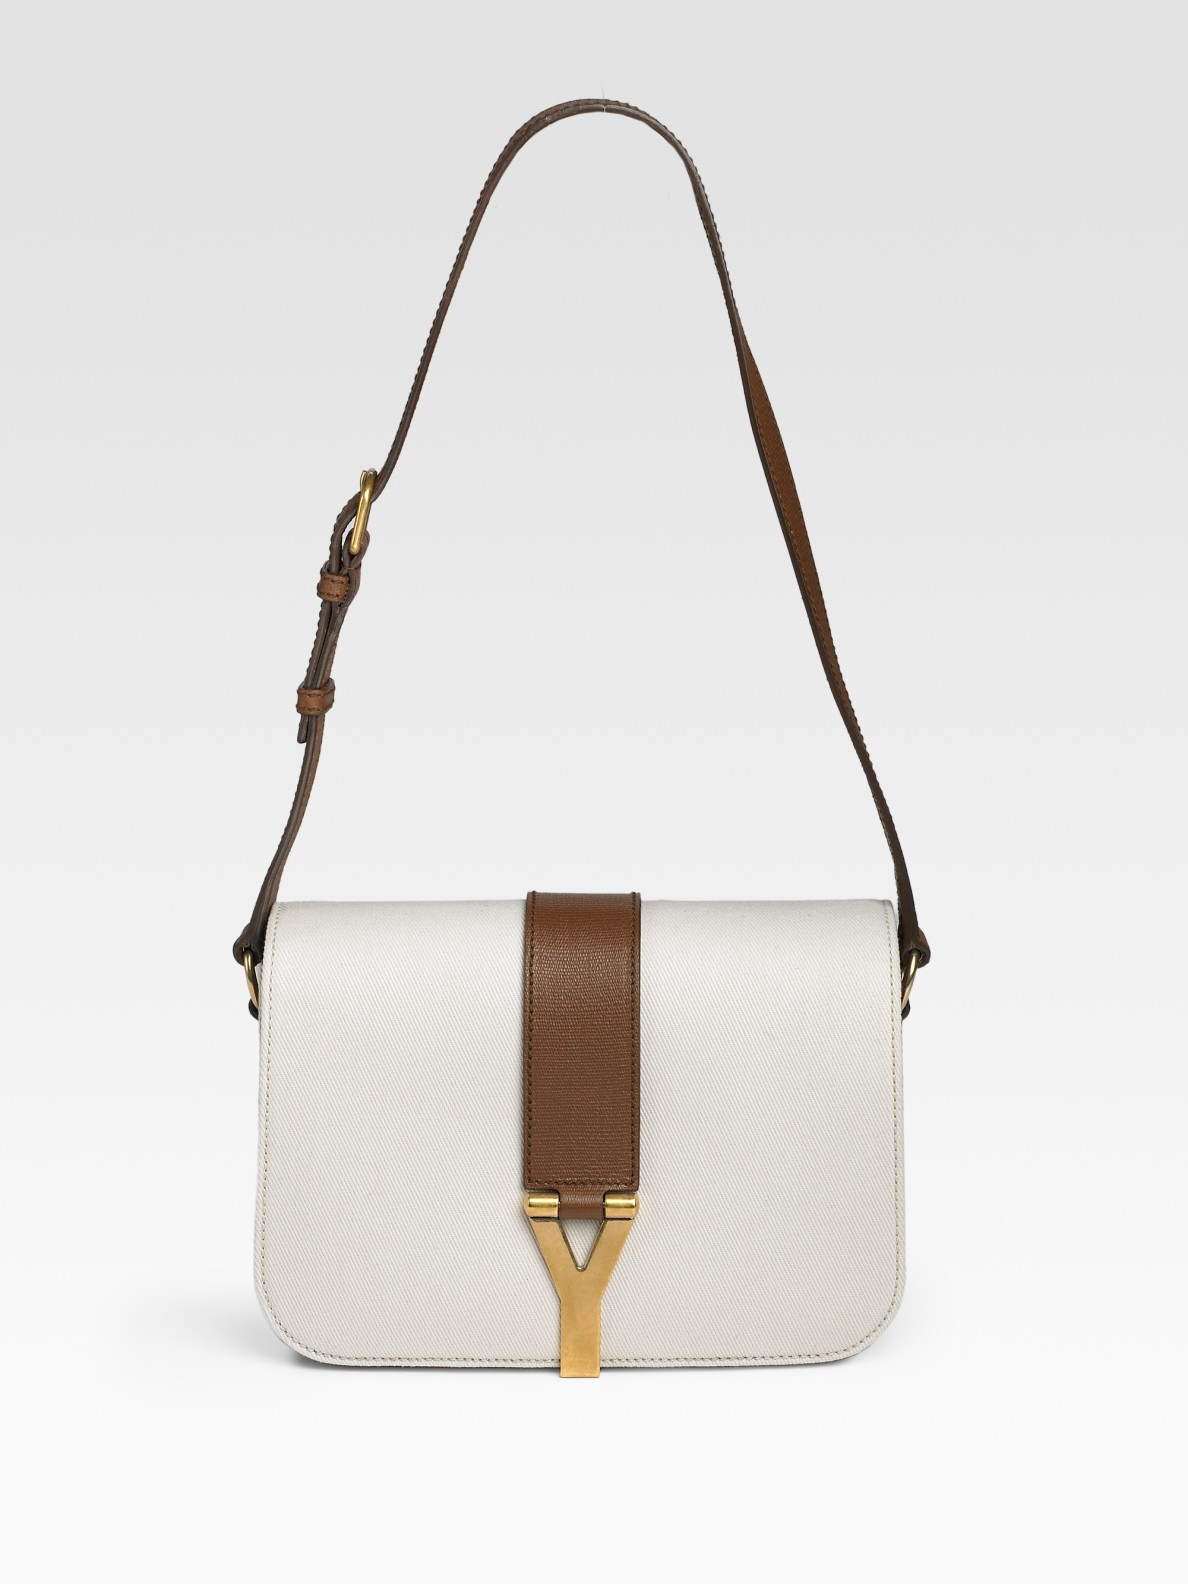 Saint laurent Chyc Canvas and Leather Flap Bag in White   Lyst